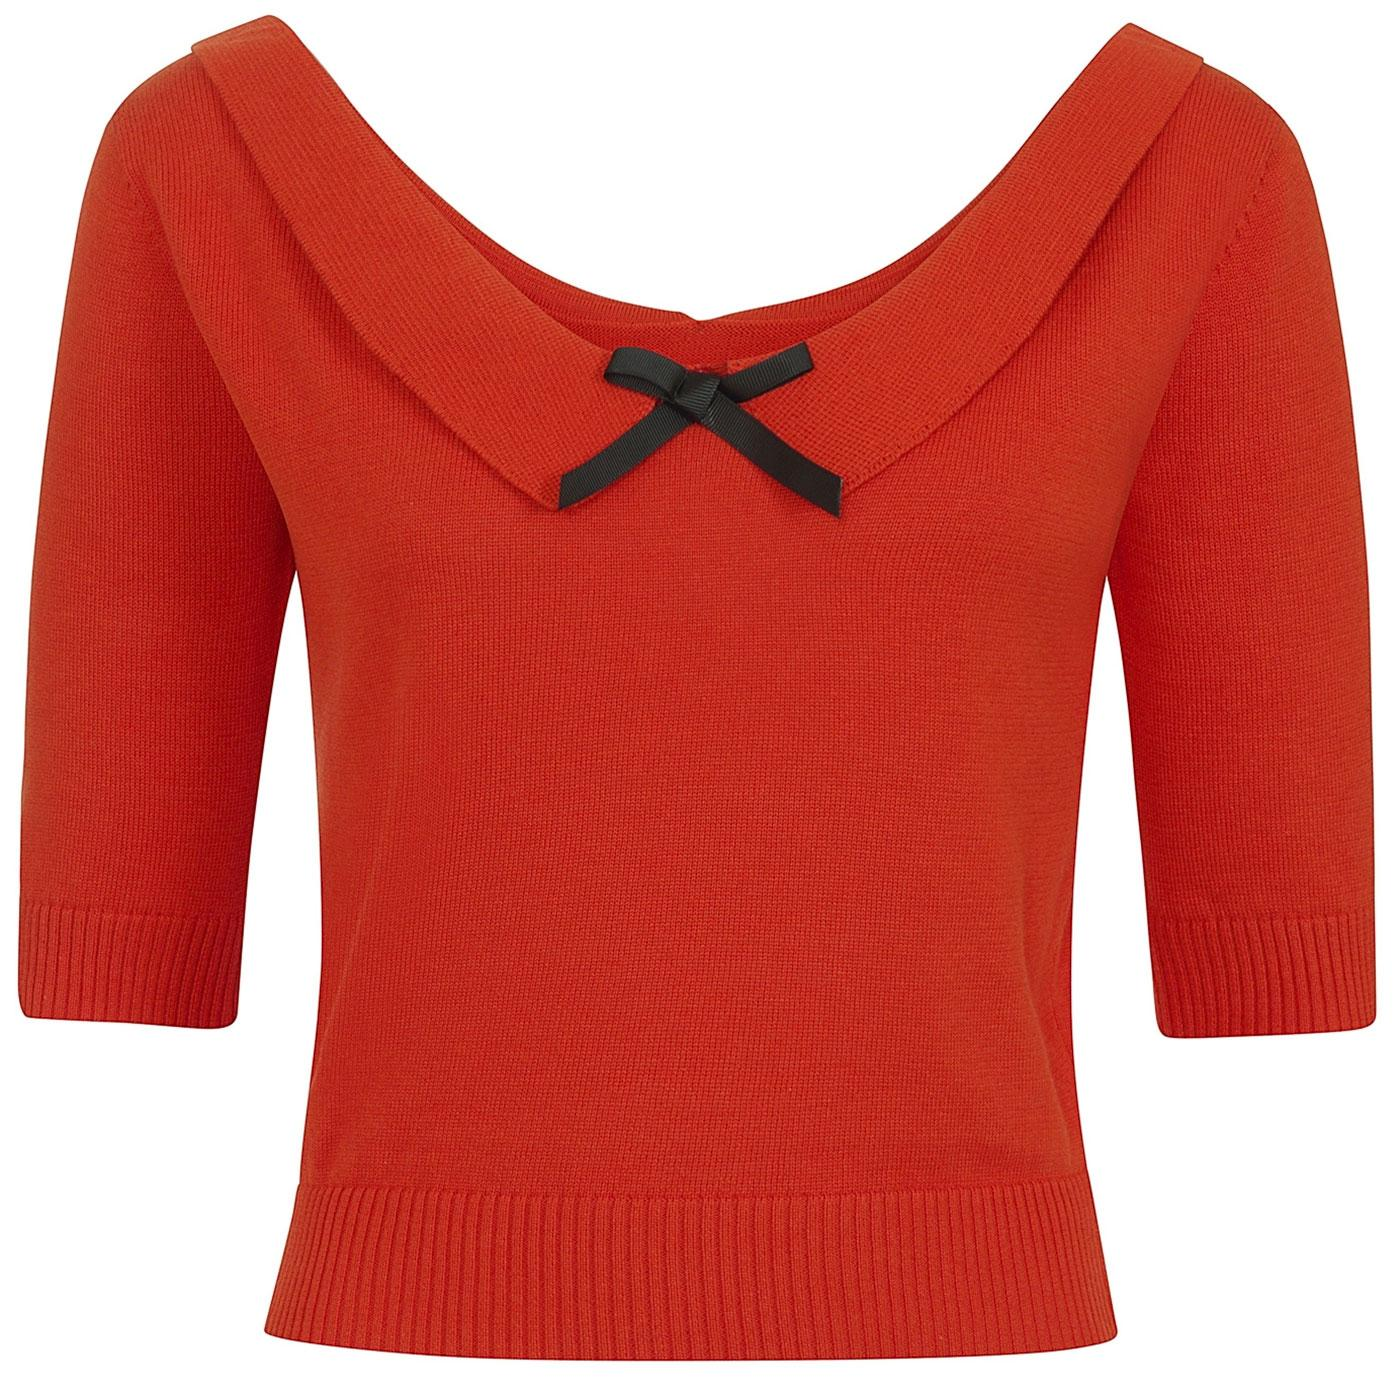 Babette COLLECTIF Retro 50s Knitted Top in Orange